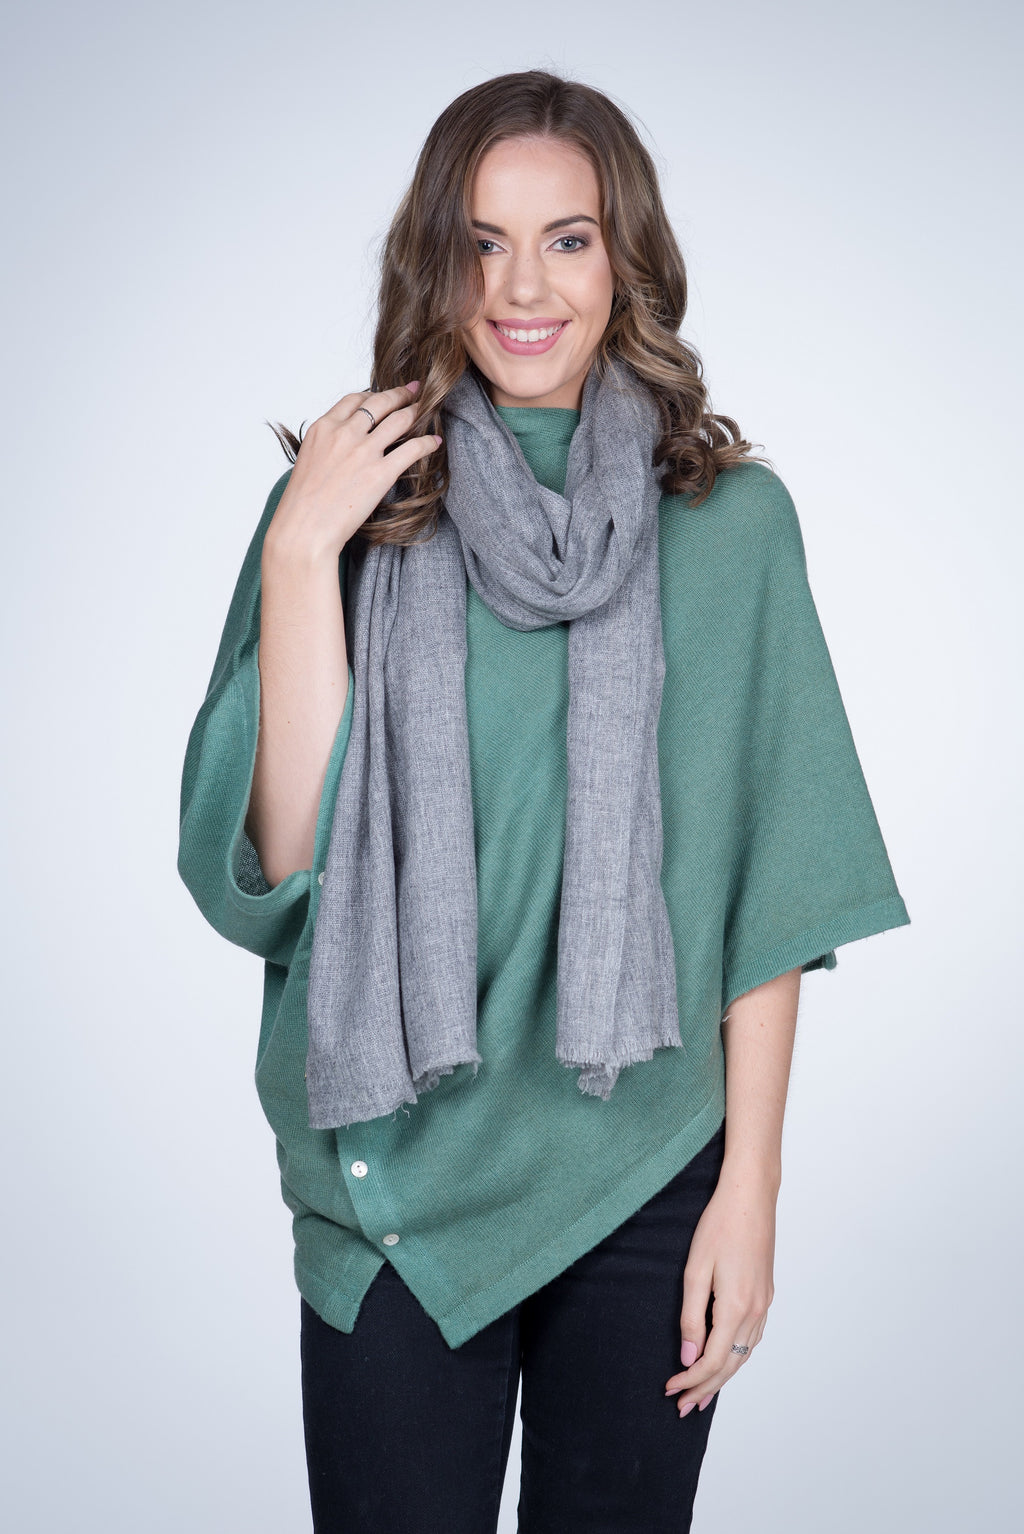 Nine Yaks - Natural Cashmere Shawl - Mid Grey - last minute gift idea - melbourne